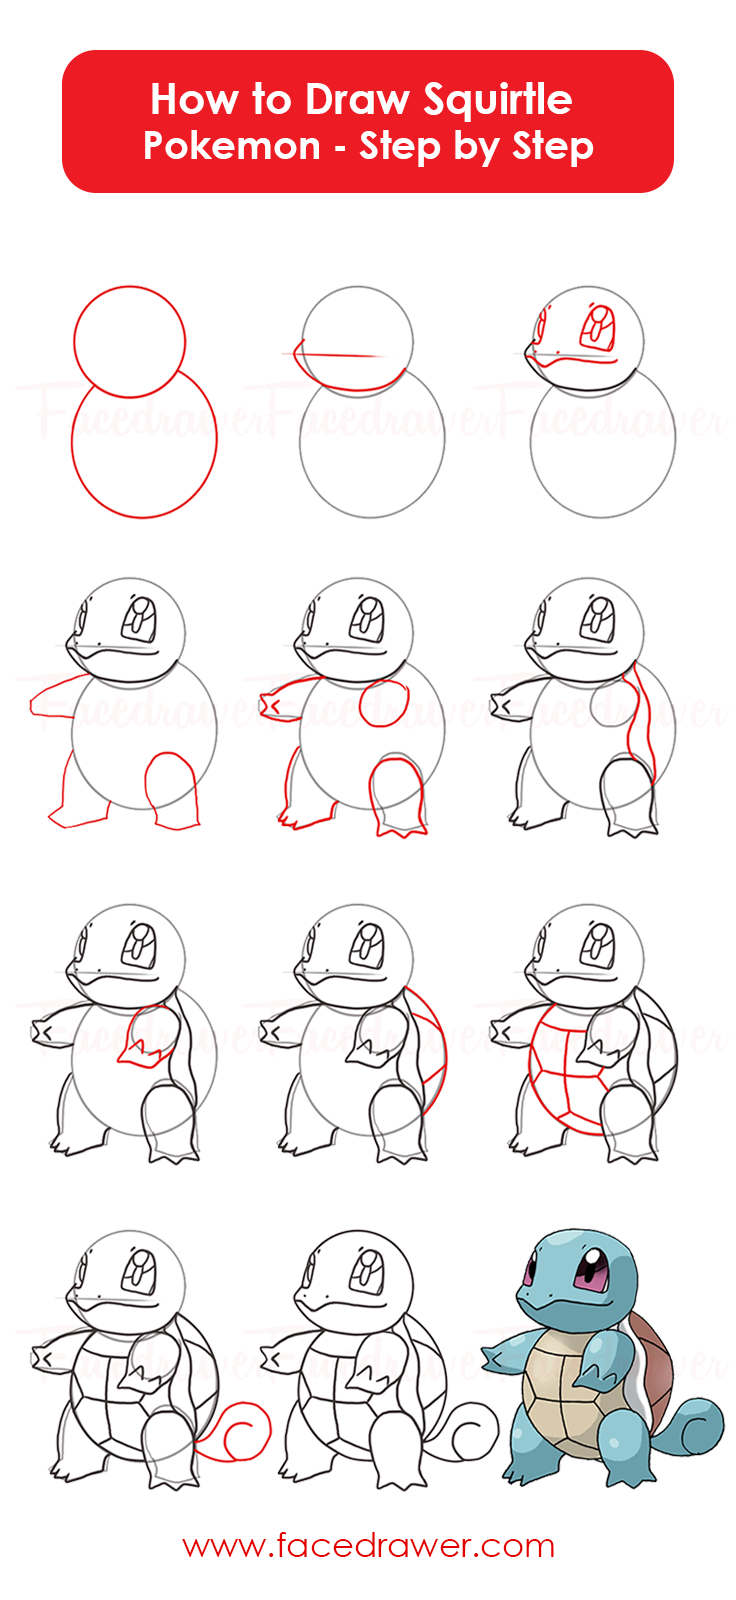 You Like The Cute Squirtle Pokemon Learn How To Draw Squirtle From Pokemon Just Follow Along Teh Easy Steps And Learn Pokemon Drawings Pokemon Easy Drawings